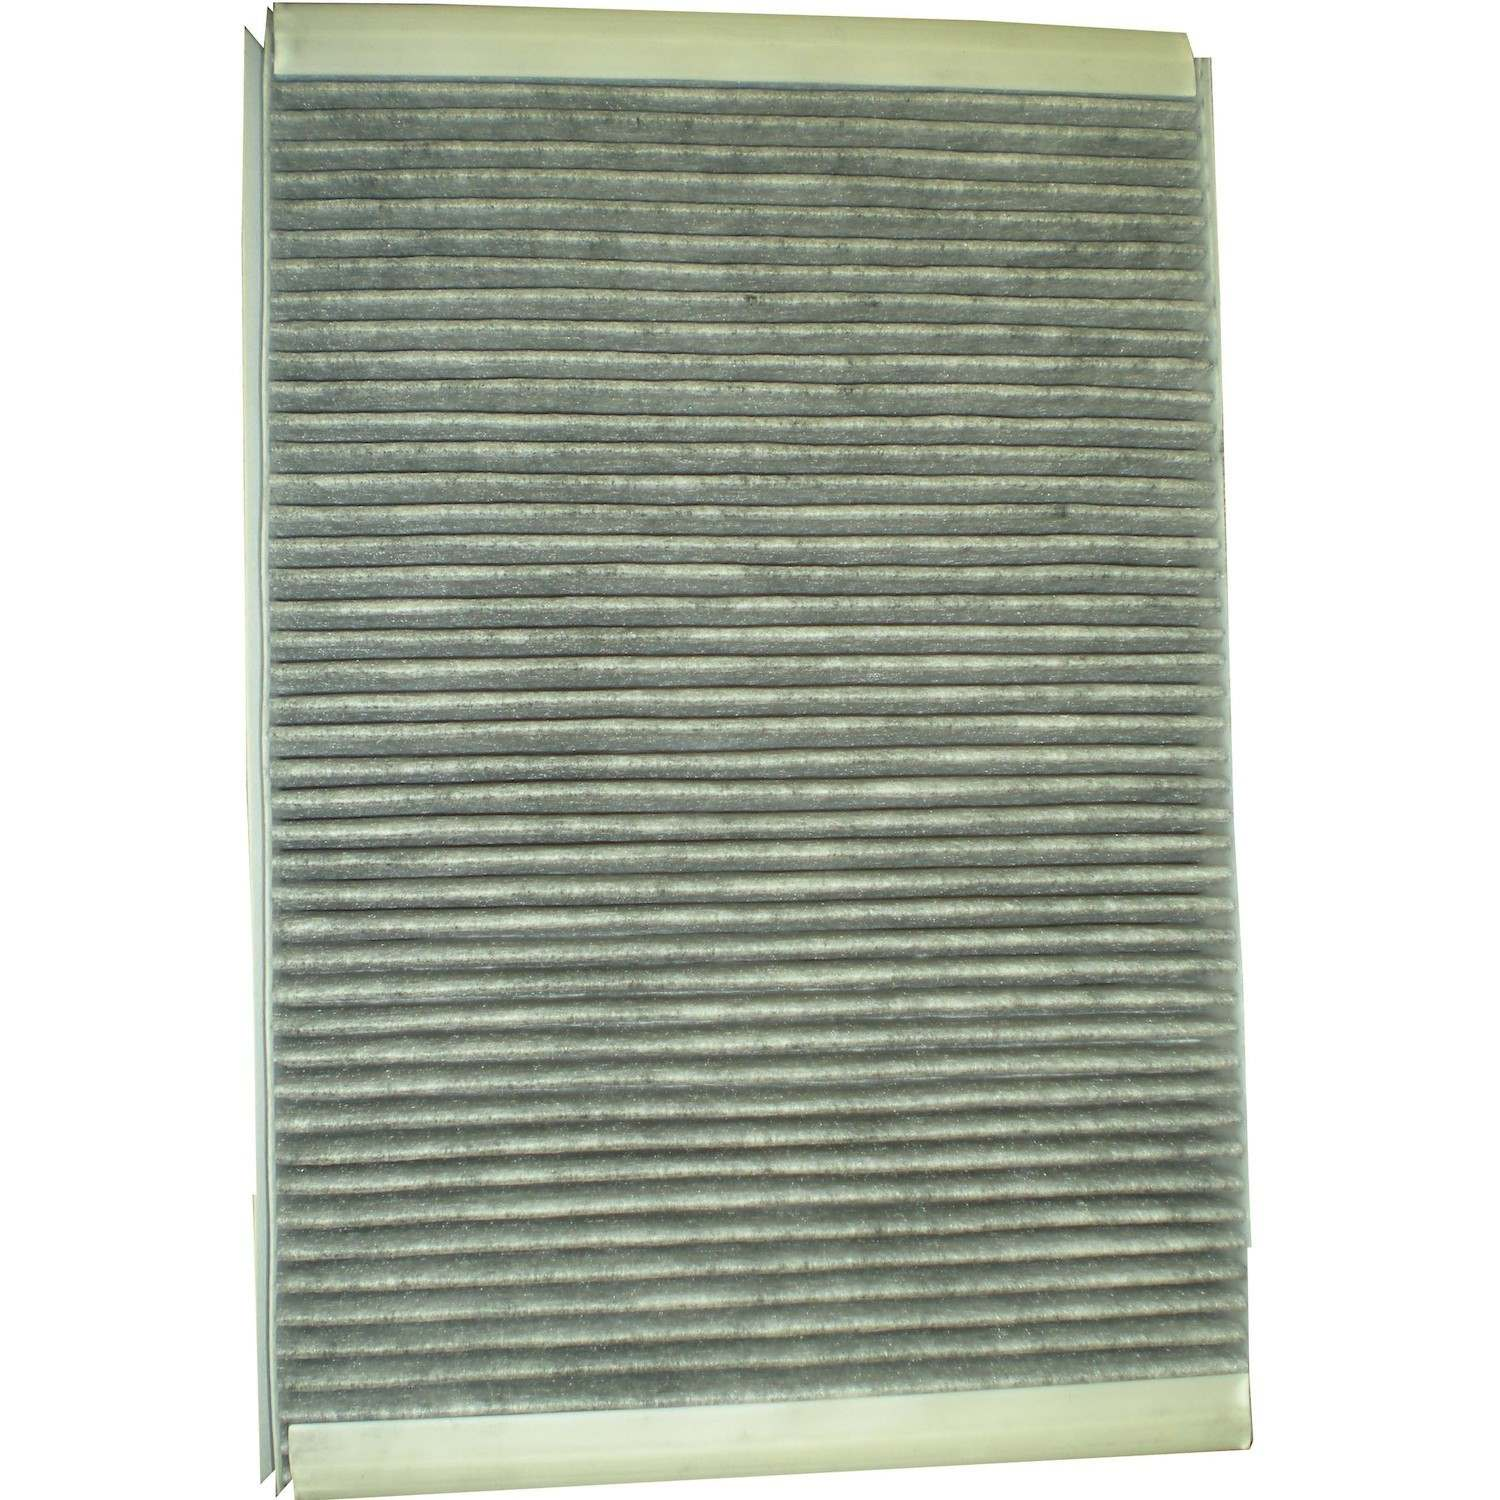 ACDELCO PROFESSIONAL - Cabin Air Filter - DCC CF2226C